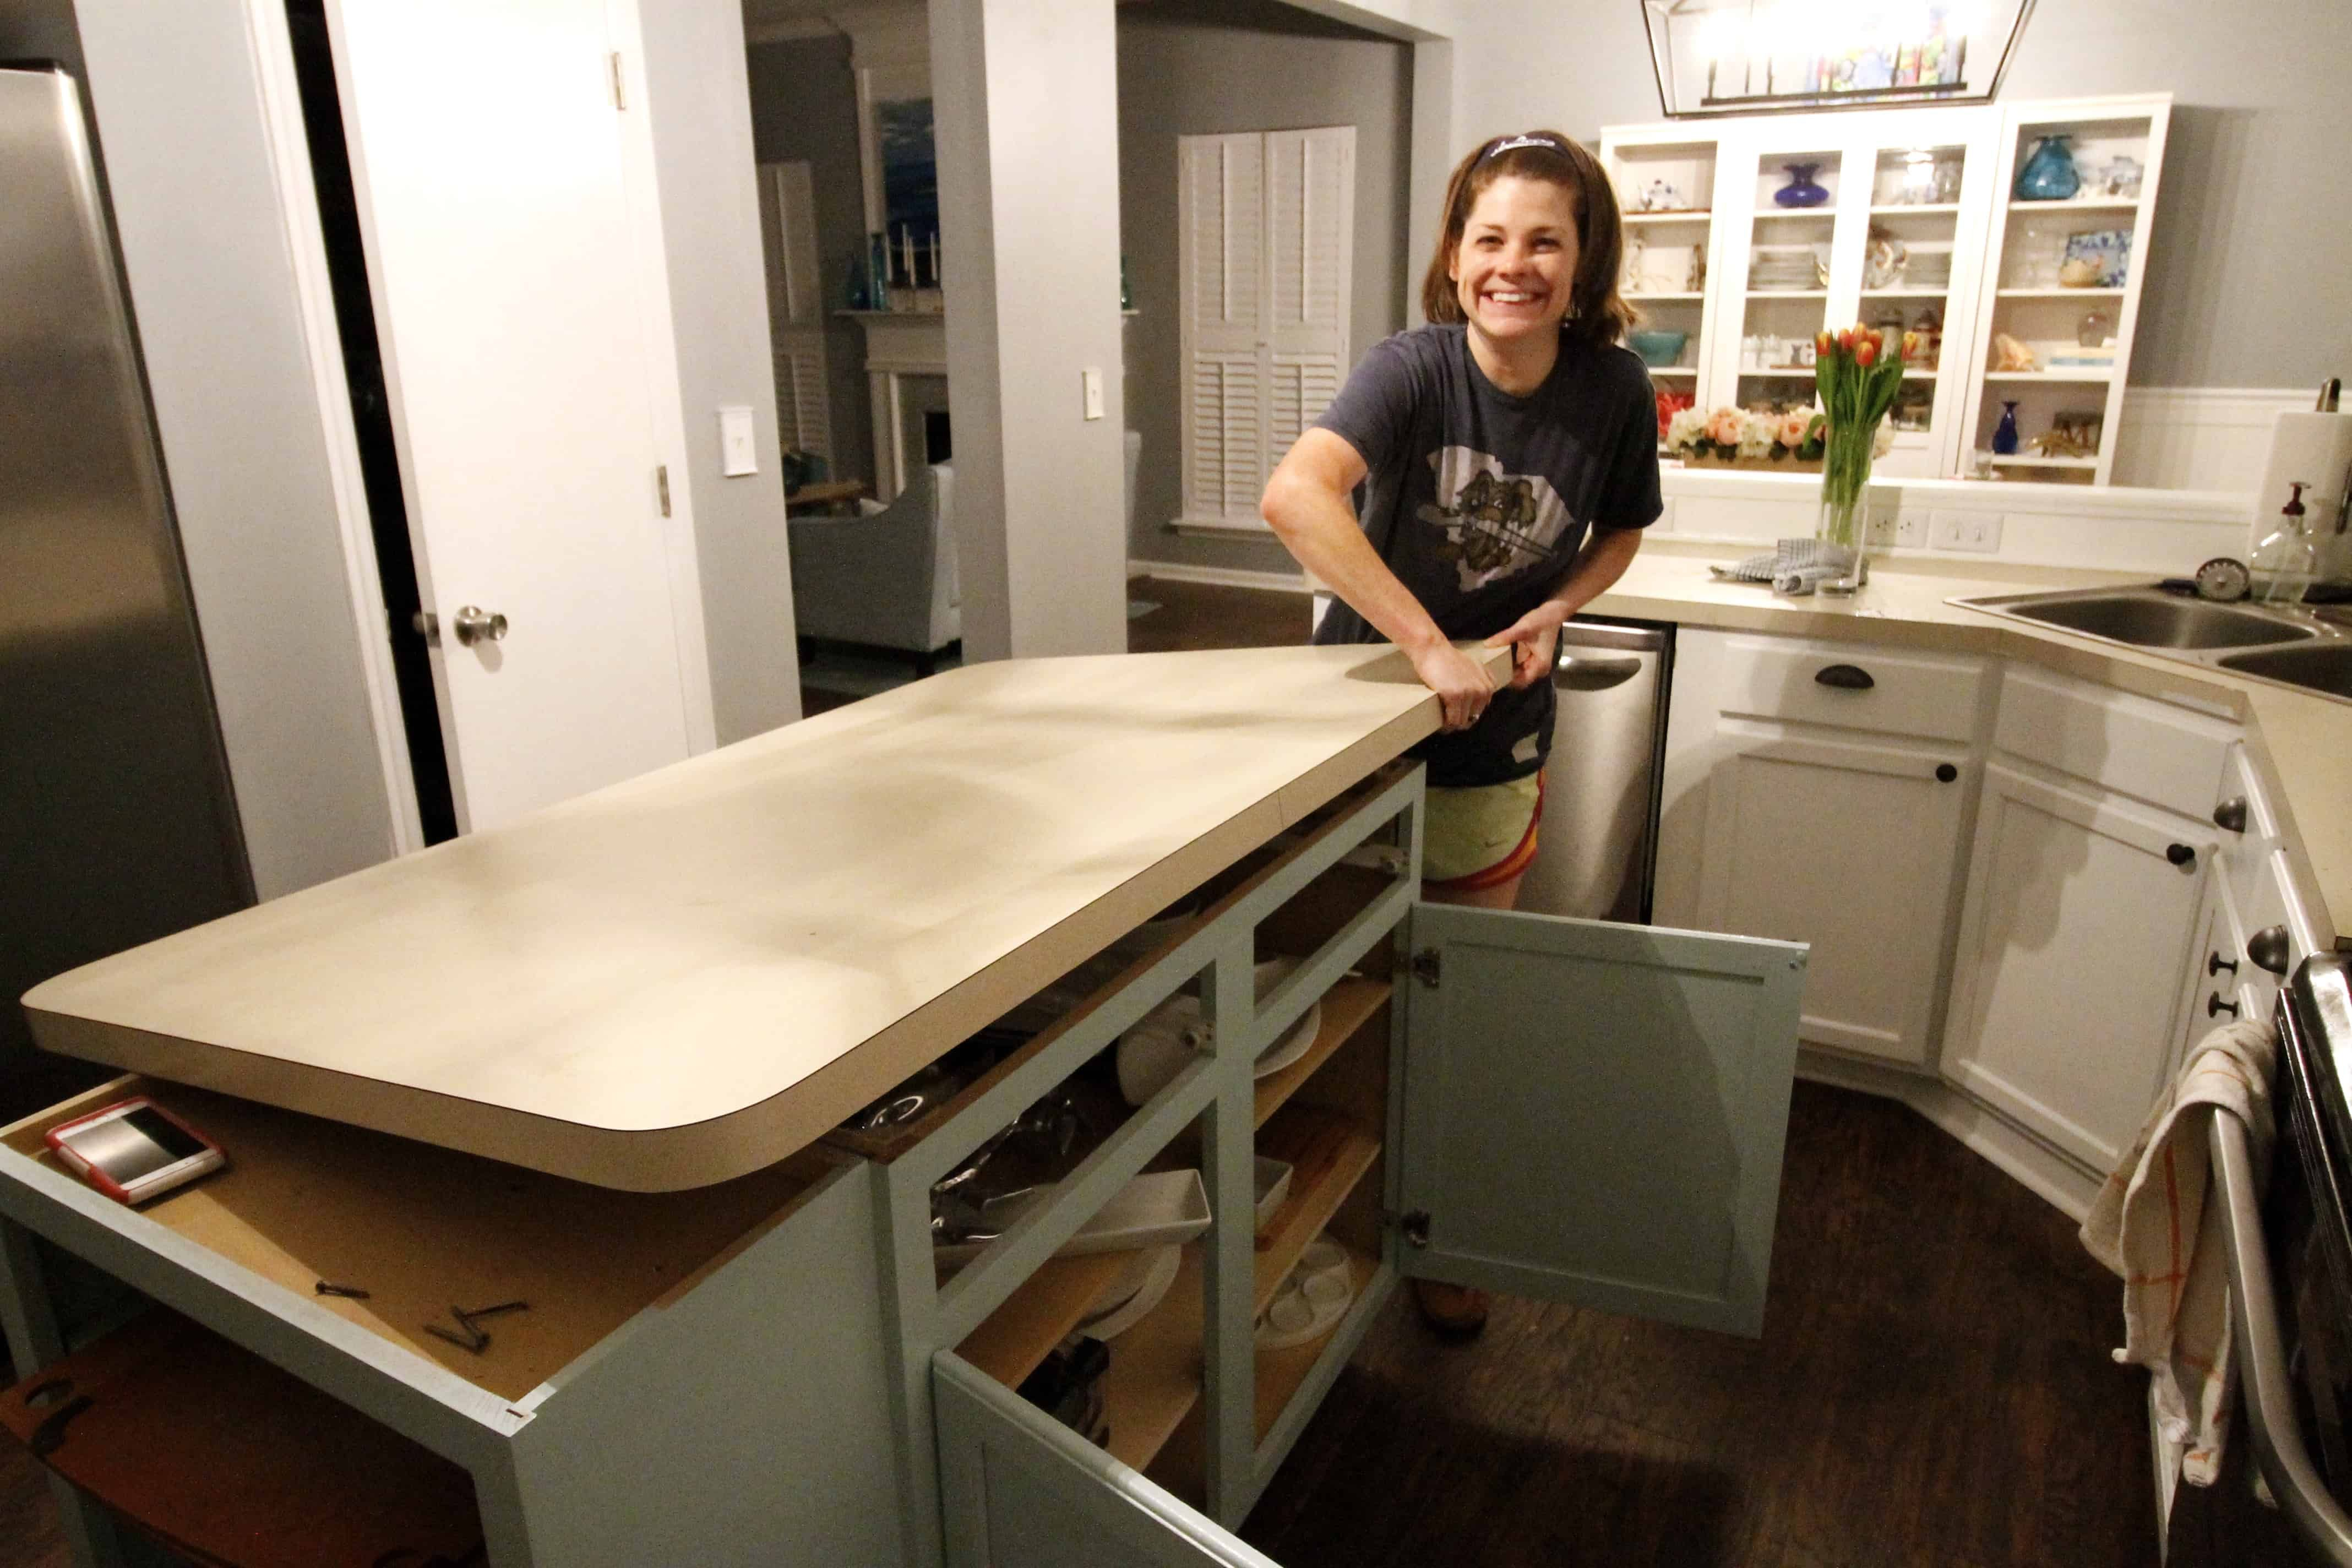 How To Remove Laminate Countertop Backsplash Without Damaging Cabinets Kitchen Remodel Countertops Laminate Countertops Countertops